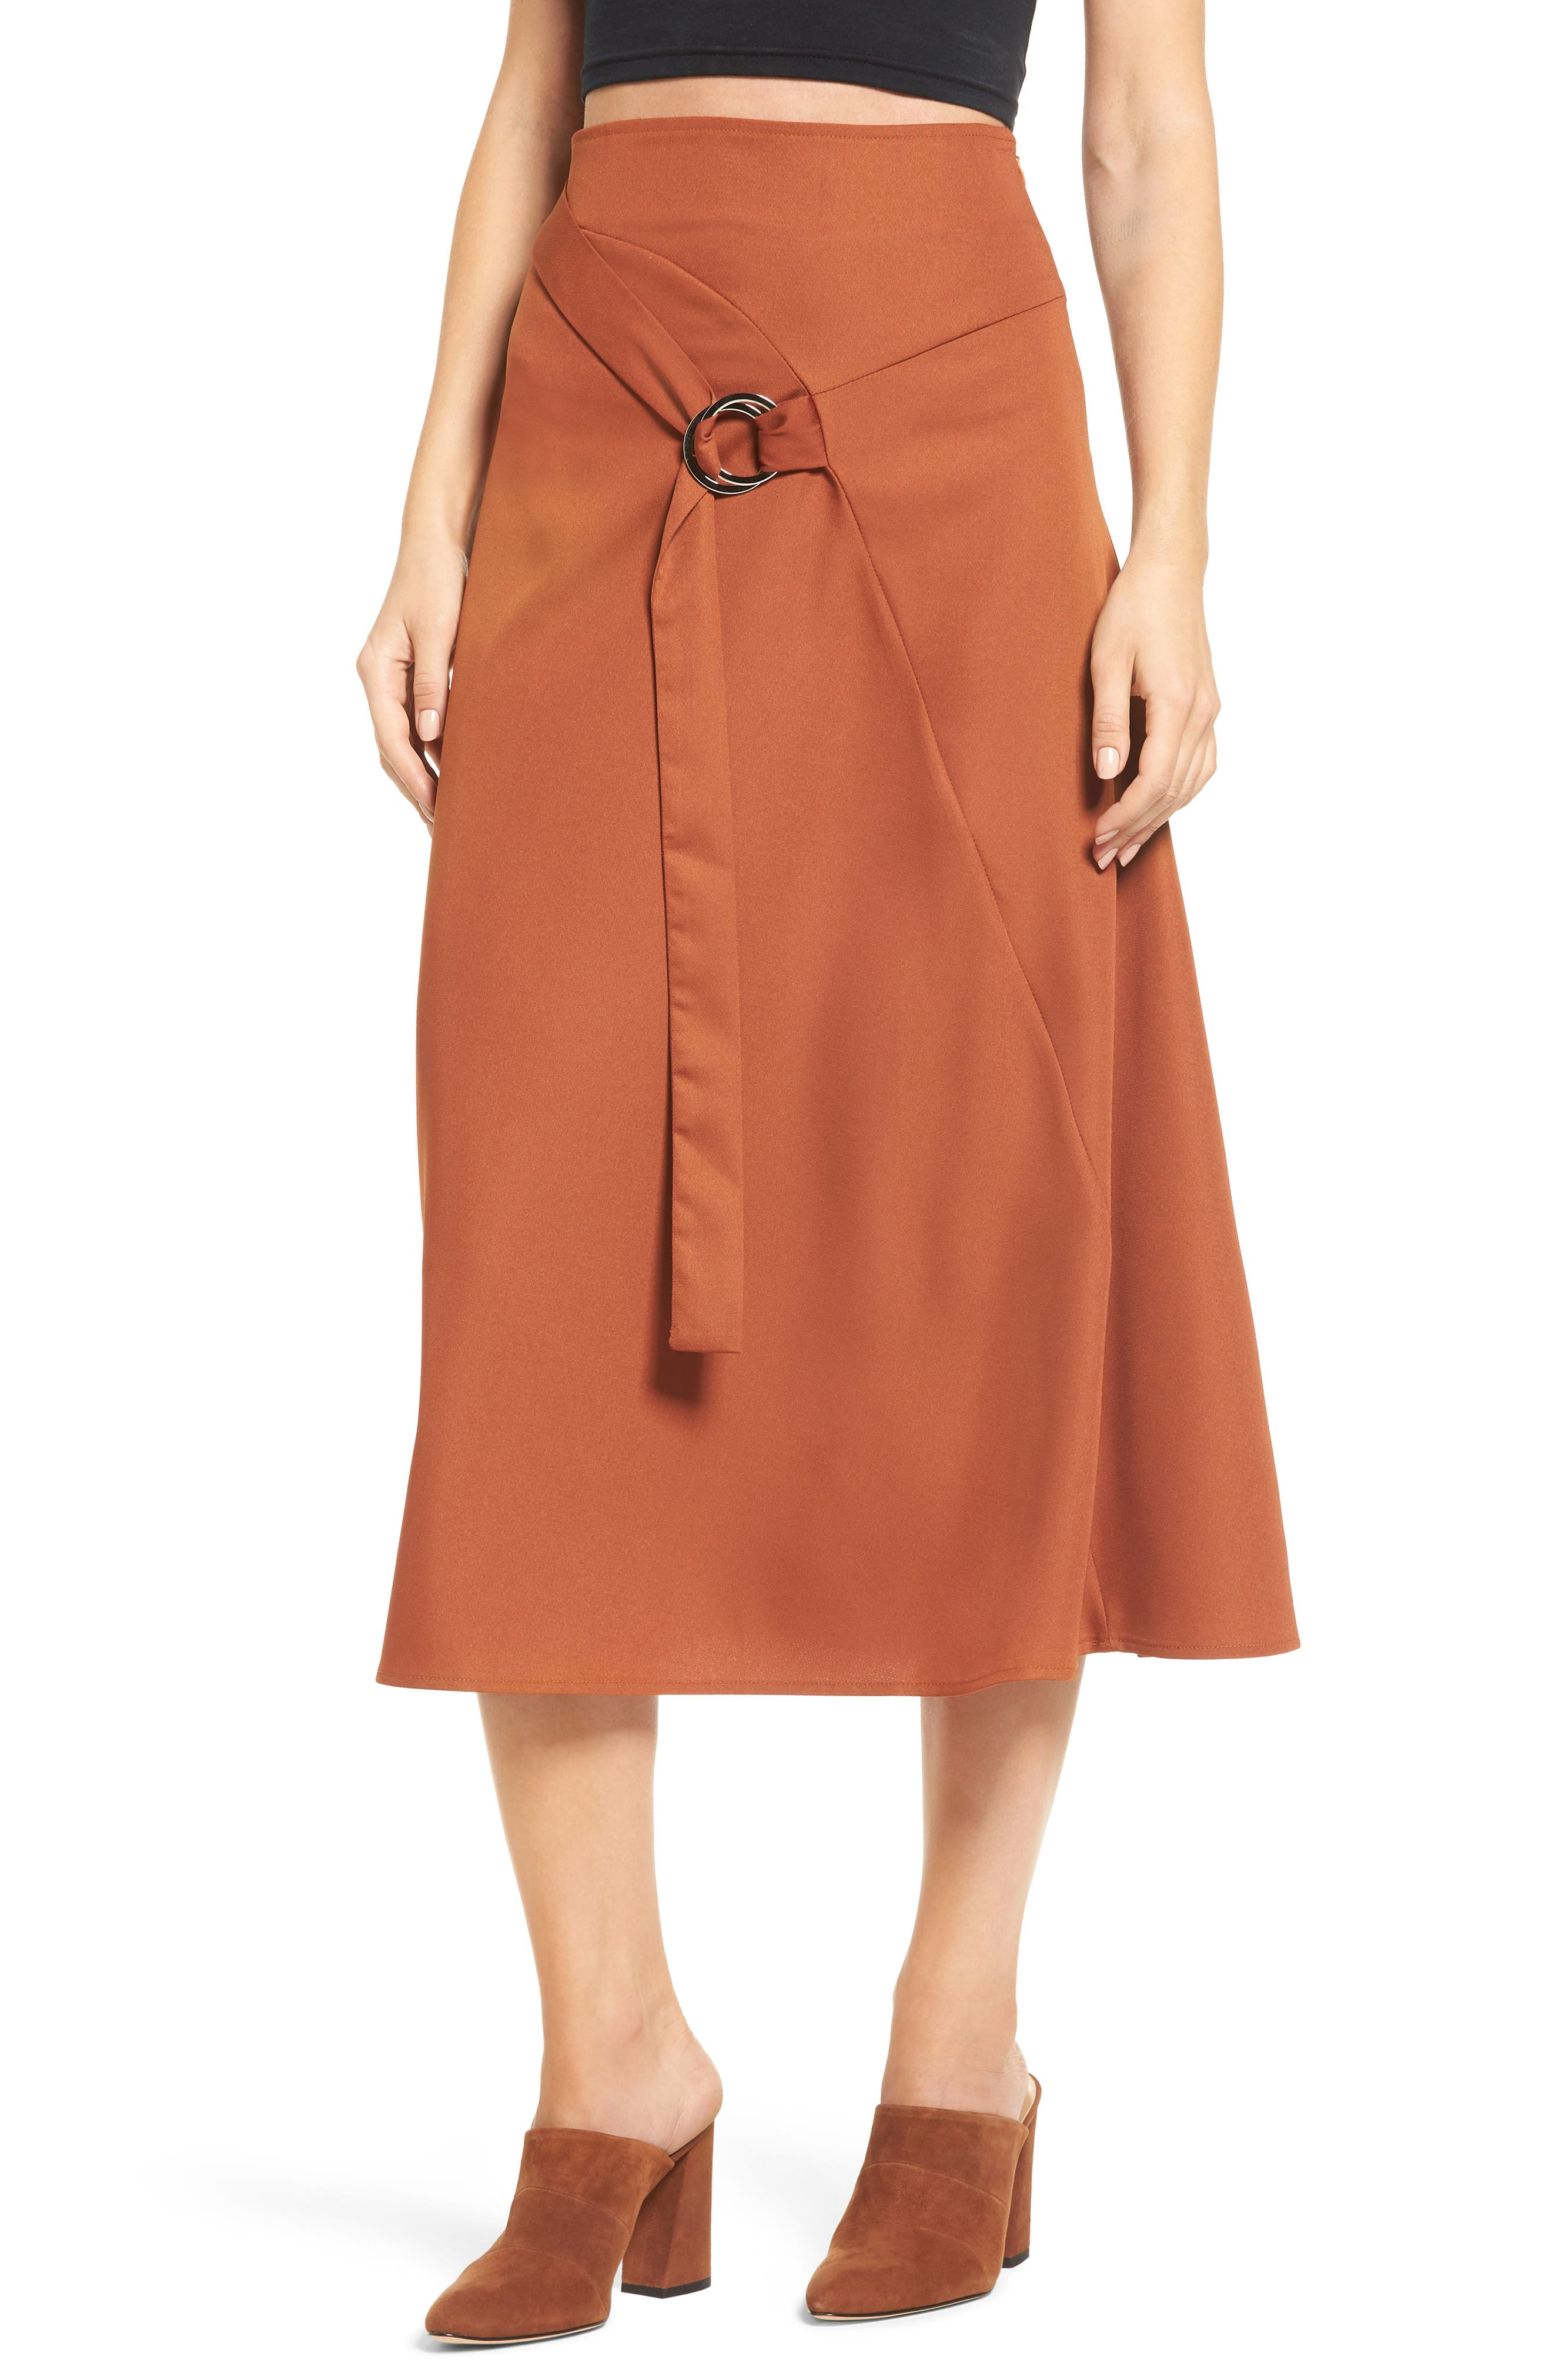 Alternate Image 1 Selected - J.O.A. Belted Midi Skirt